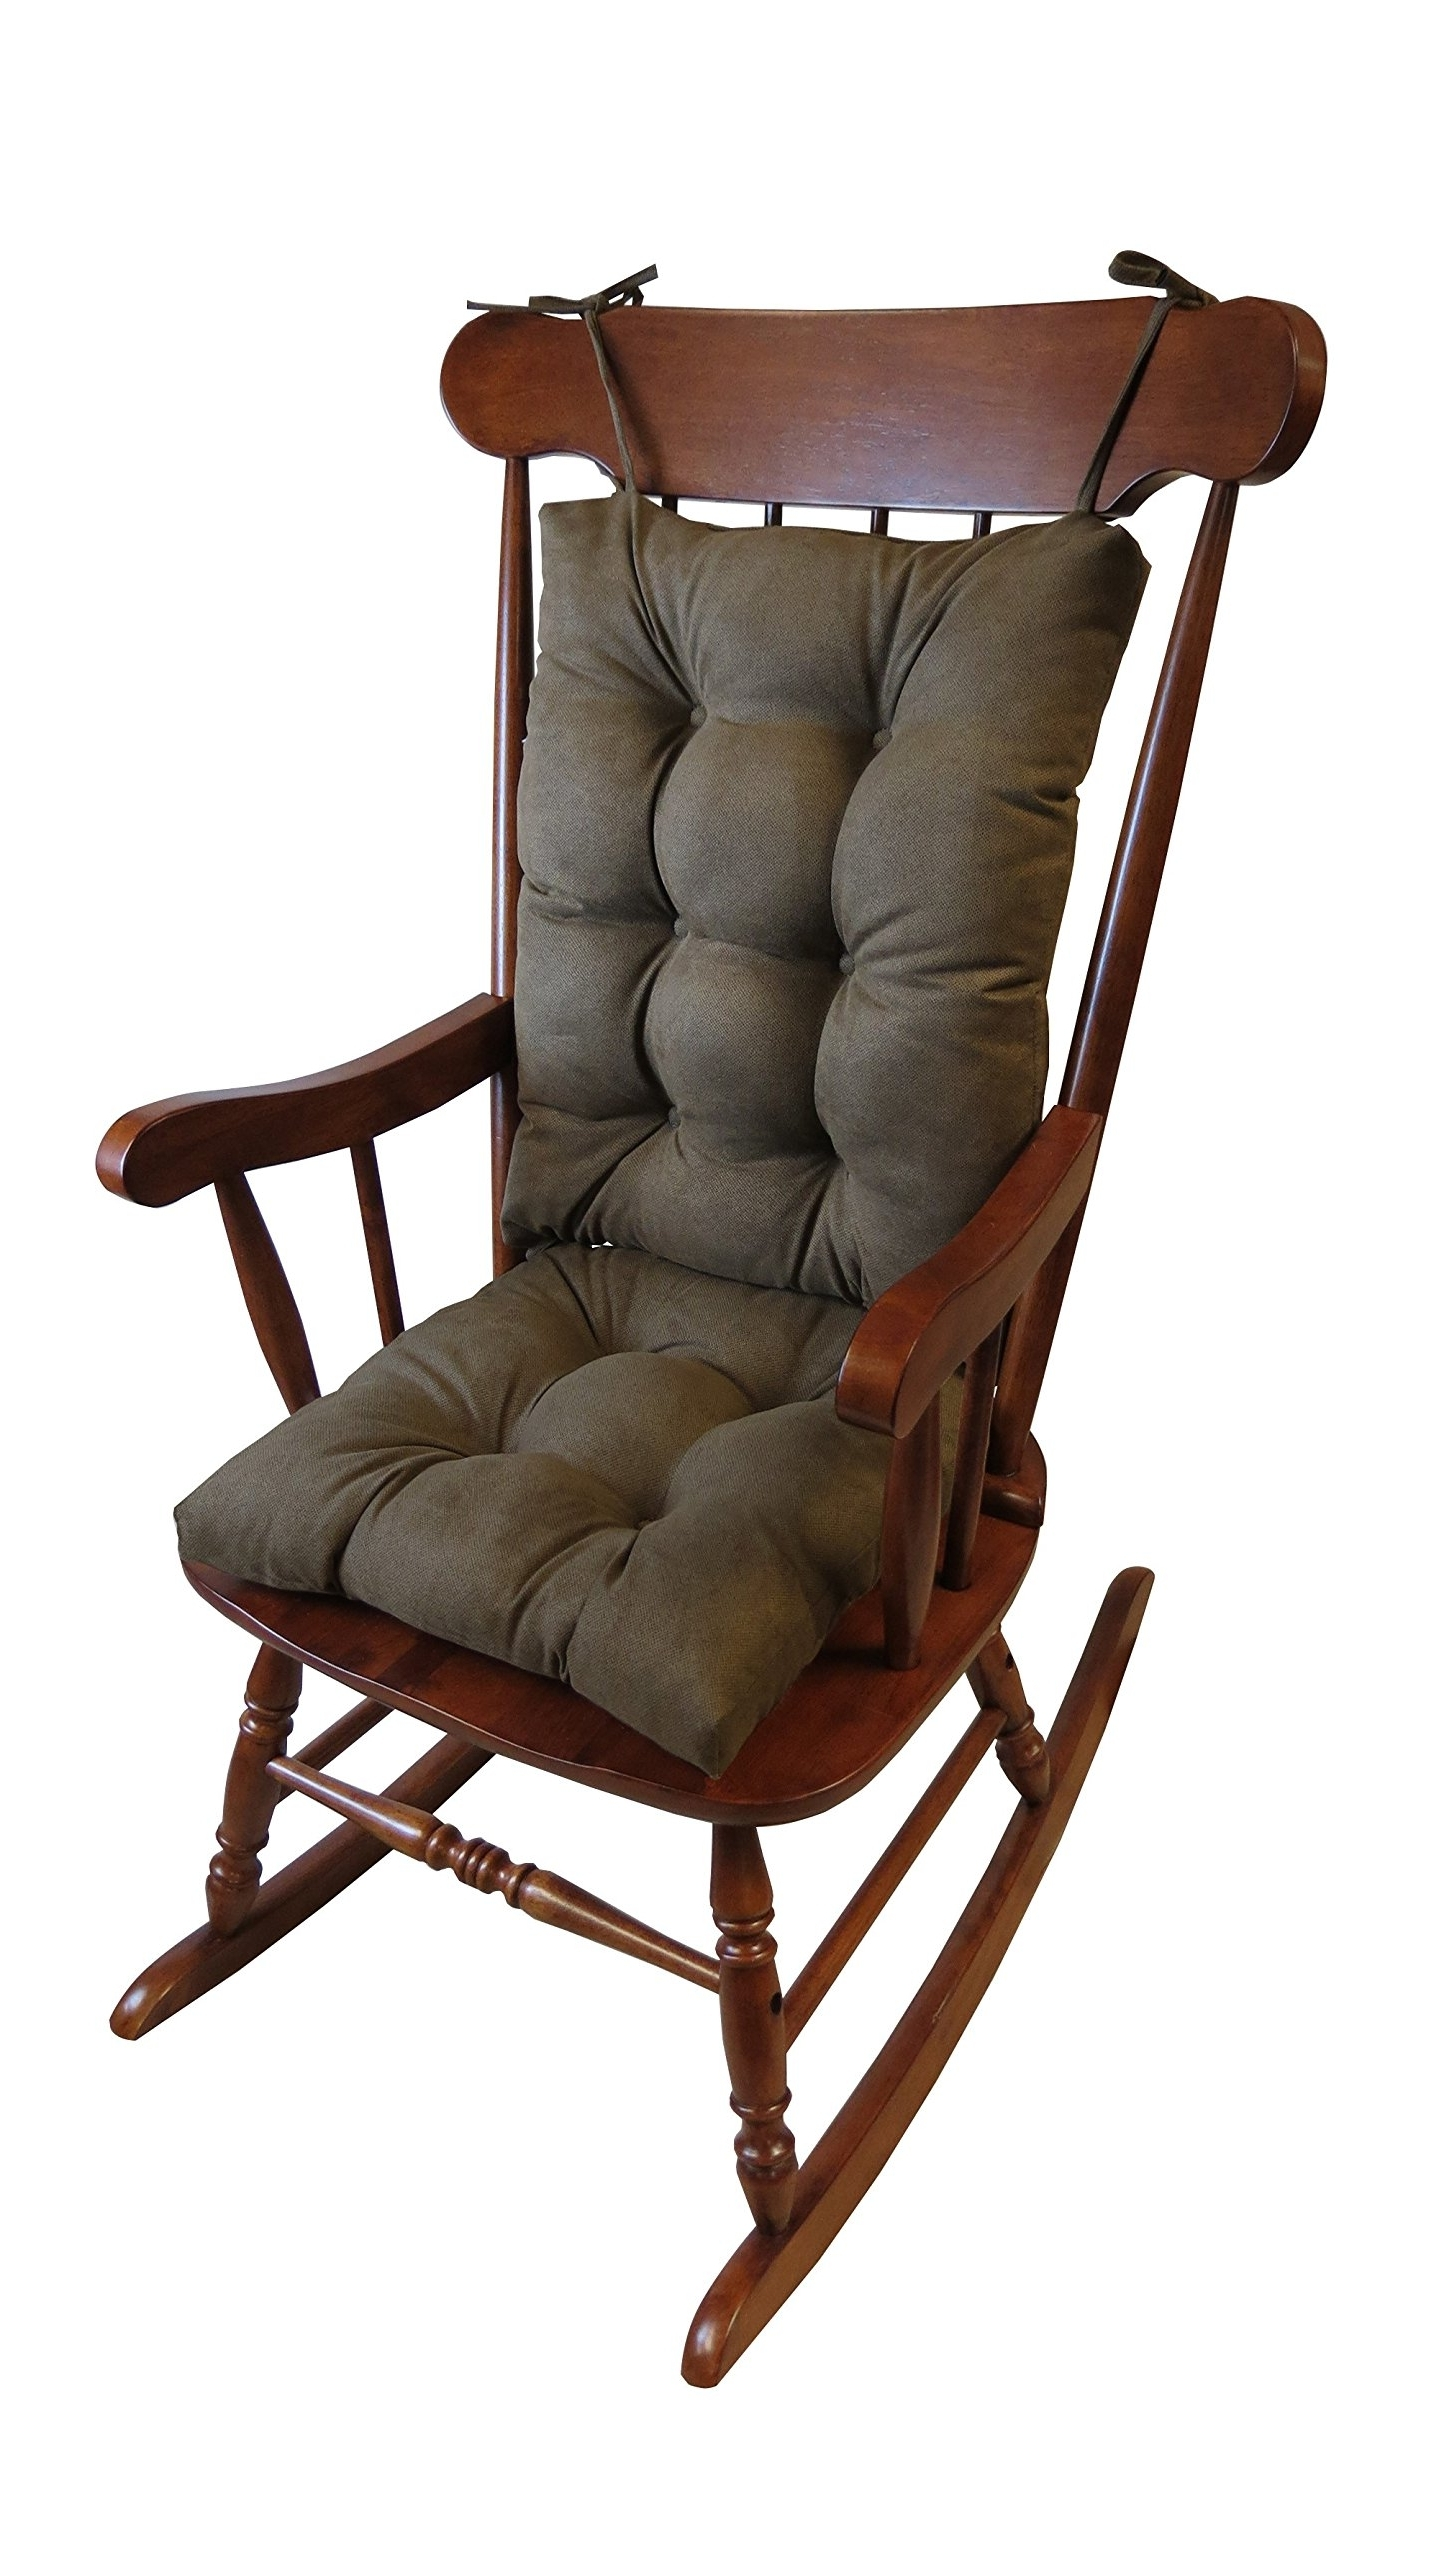 Widely Used Xl Rocking Chairs Throughout Rocking Chair Cushion Wooden Antique Seat Back Armchair Porch Living (View 14 of 15)